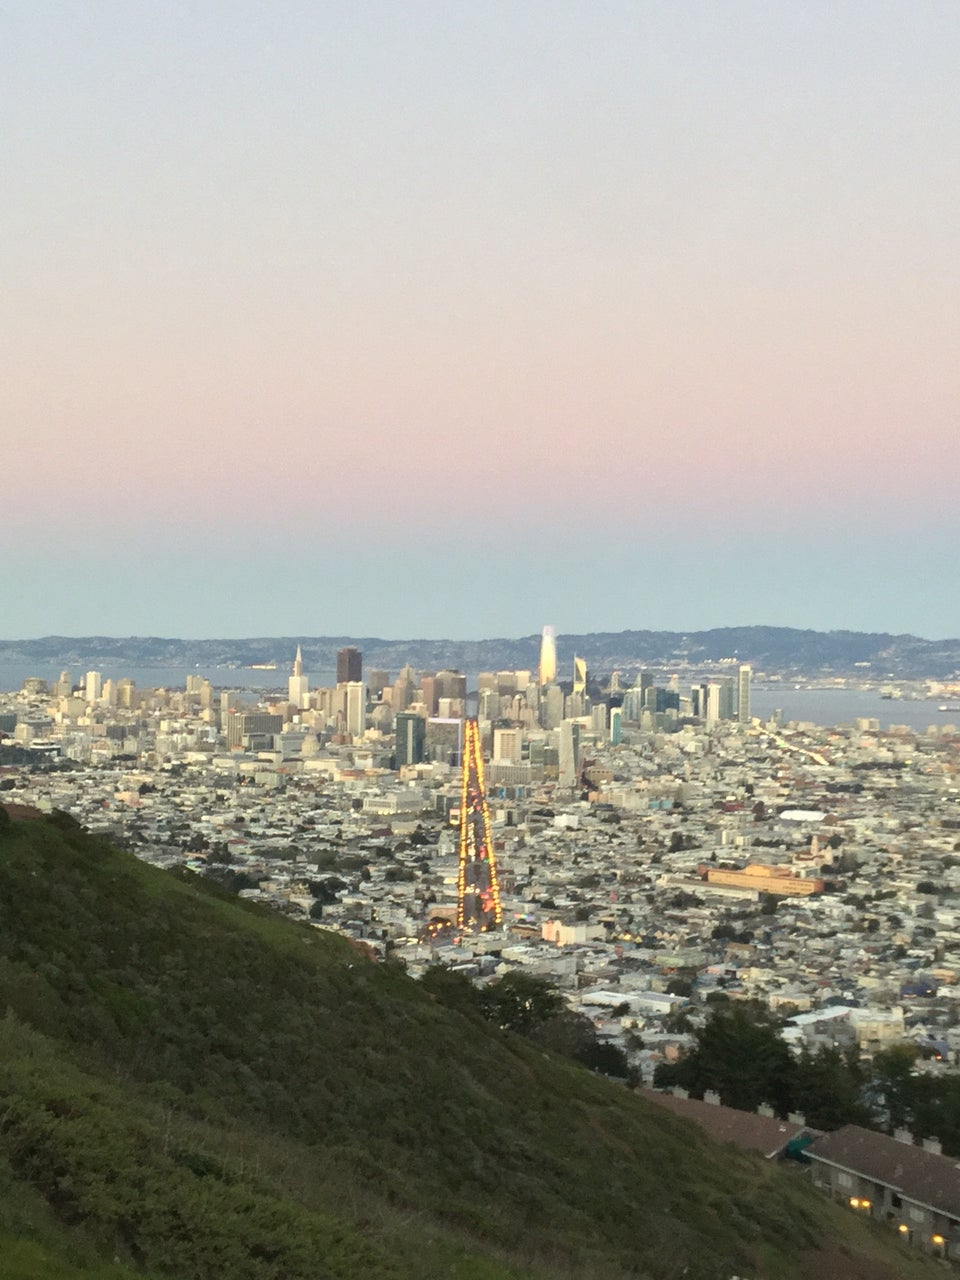 Clear gradient of white to yellow, orange, pink, purple, and blue sky above East Bay hills in the distance behind the San Francisco skyline, buildings spreading outward on either side of Market street lined with lit street lamps, nearby green hillside in the foreground.